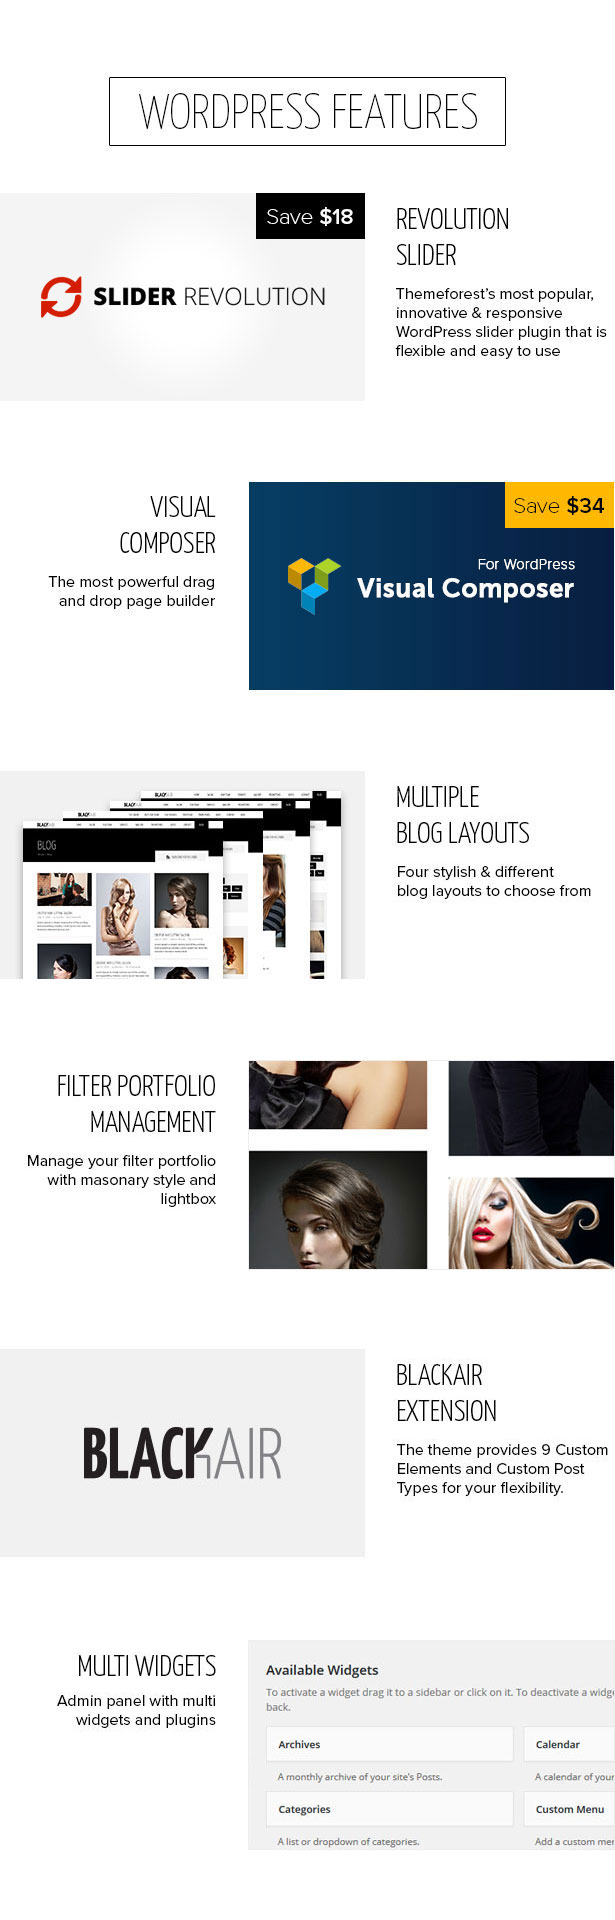 Blackair - One Page WordPress Theme for Hair & Beauty Salon - 9